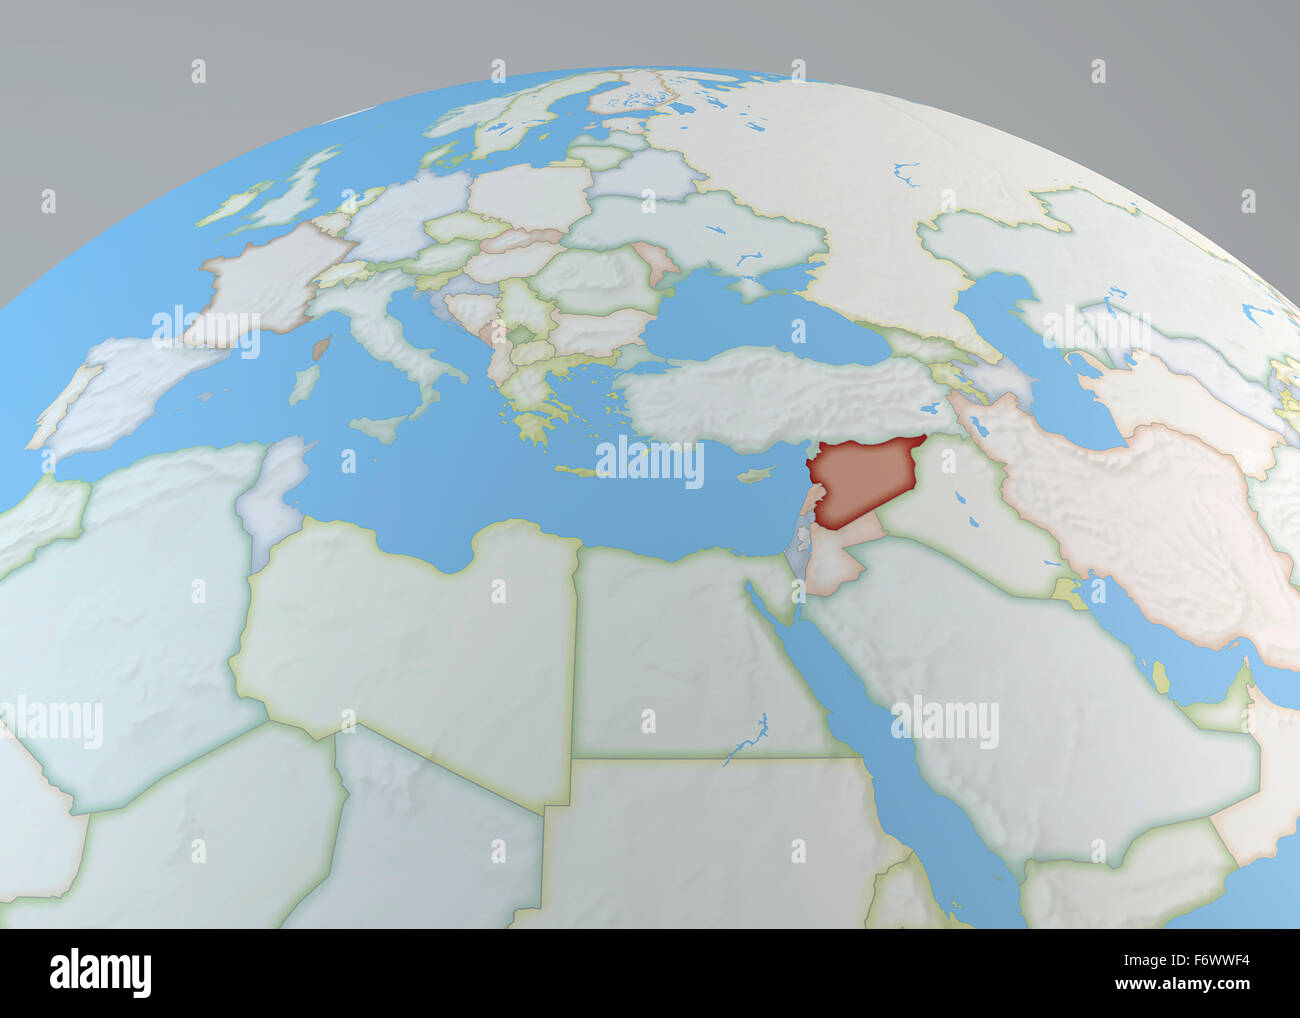 World map of Middle East with Syria highlighted, north Africa and ...